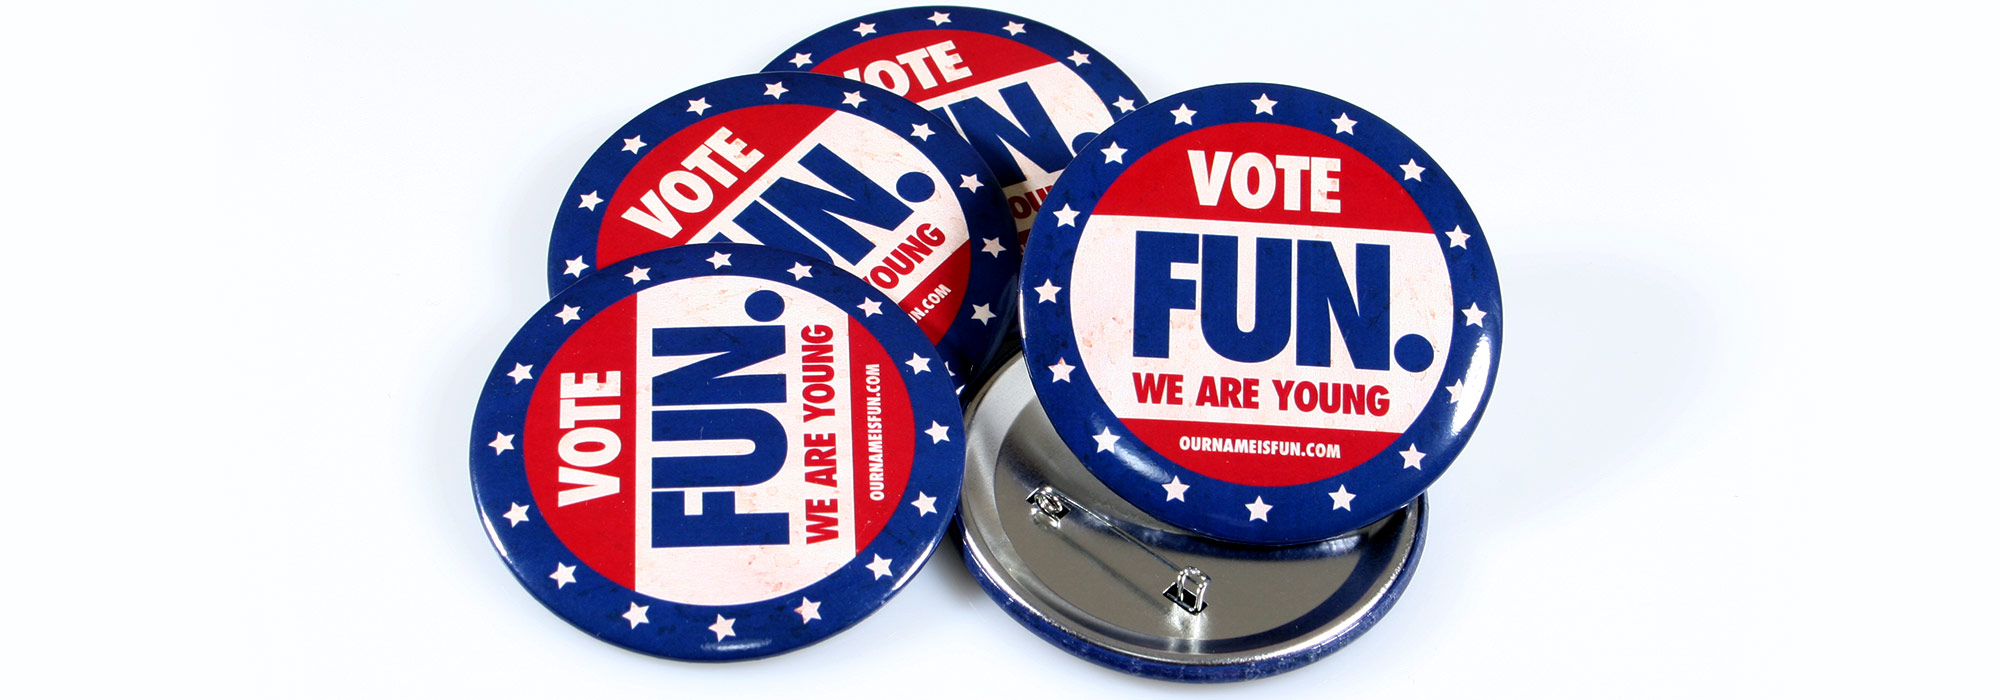 Round Custom Campaign style buttons for the band Fun